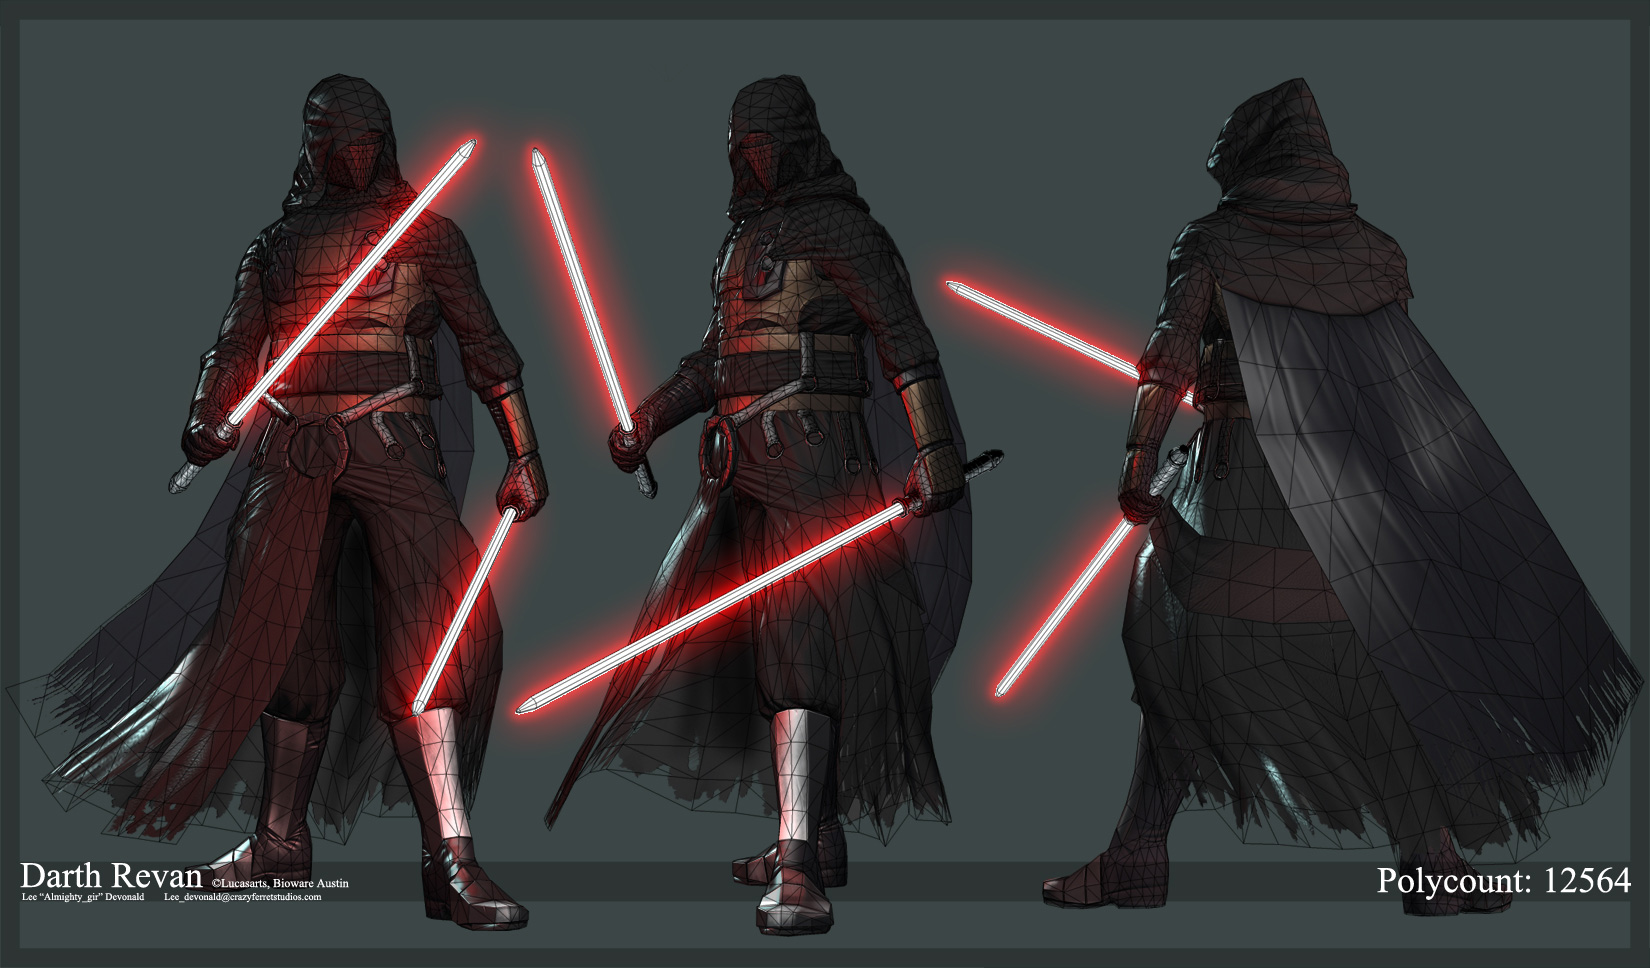 Star Wars Episode 7 Darth Revan